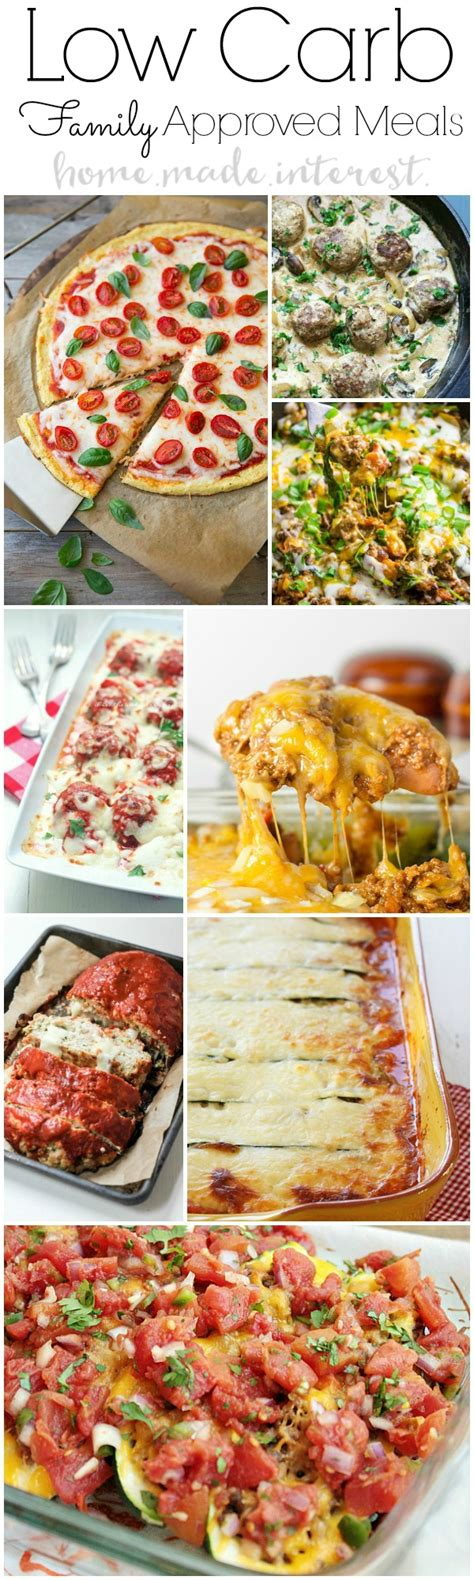 low carb dinner recipes for family home made interest